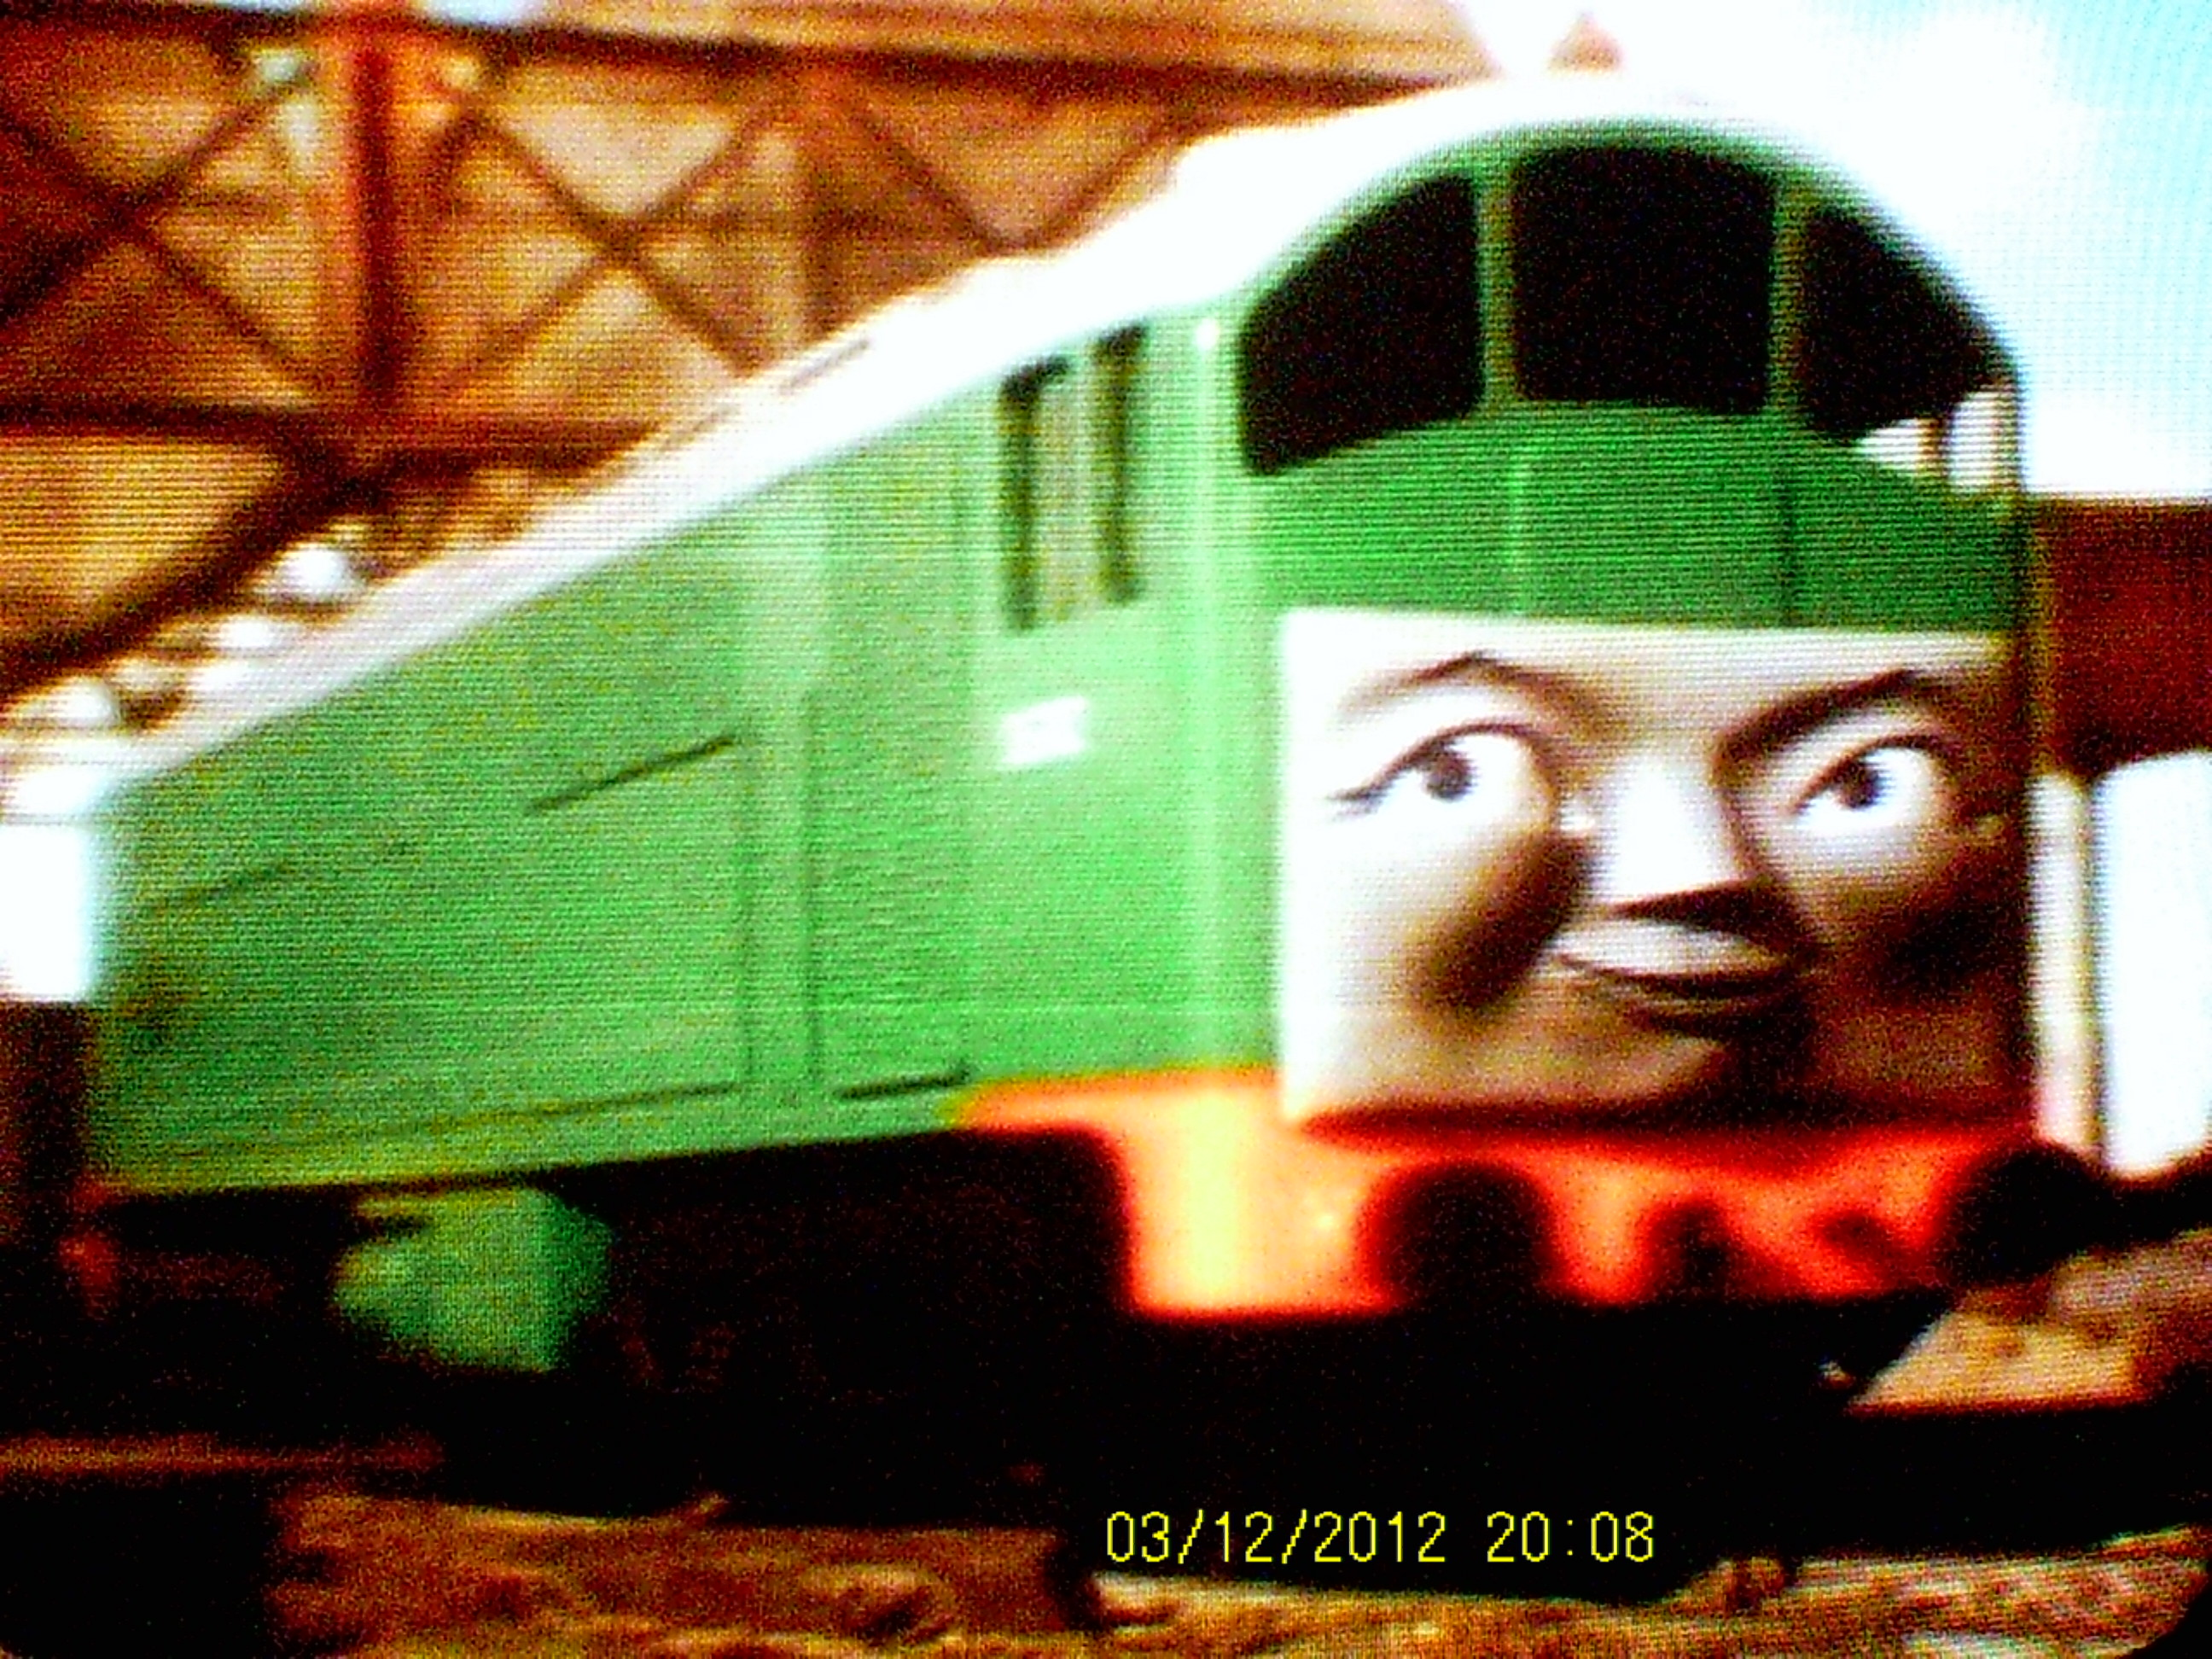 Image boco in trainz thomas and friends png scratchpad fandom - Thomas And Friends Boc